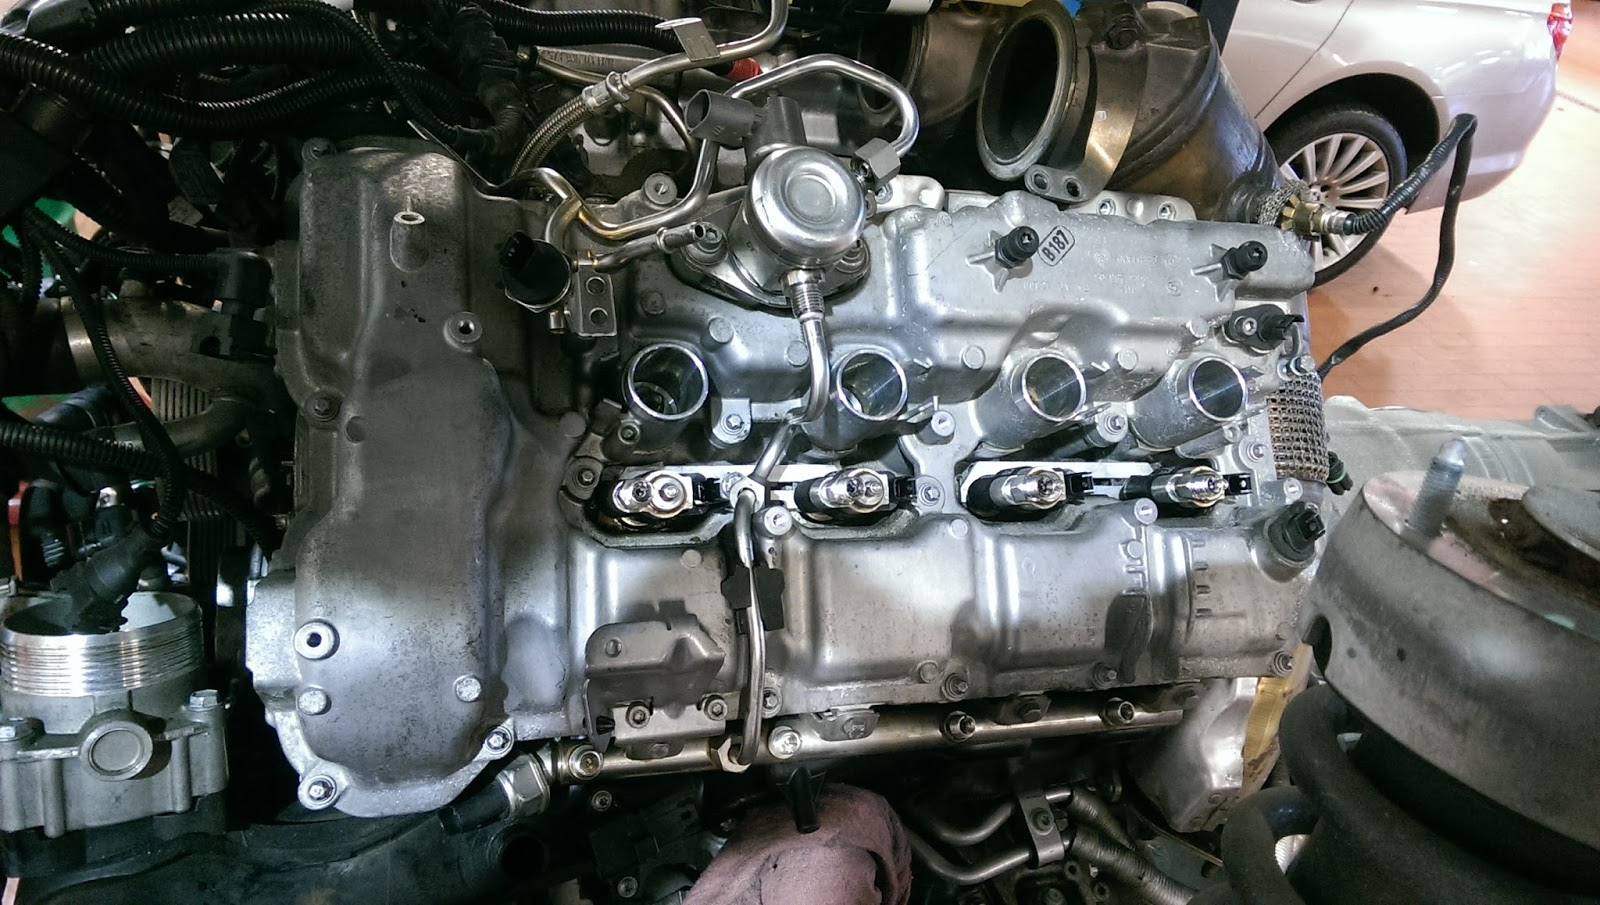 That round thing with the metal lines going into it is one of the high  pressure pumps. They are located on the top section of the valve cover, ...